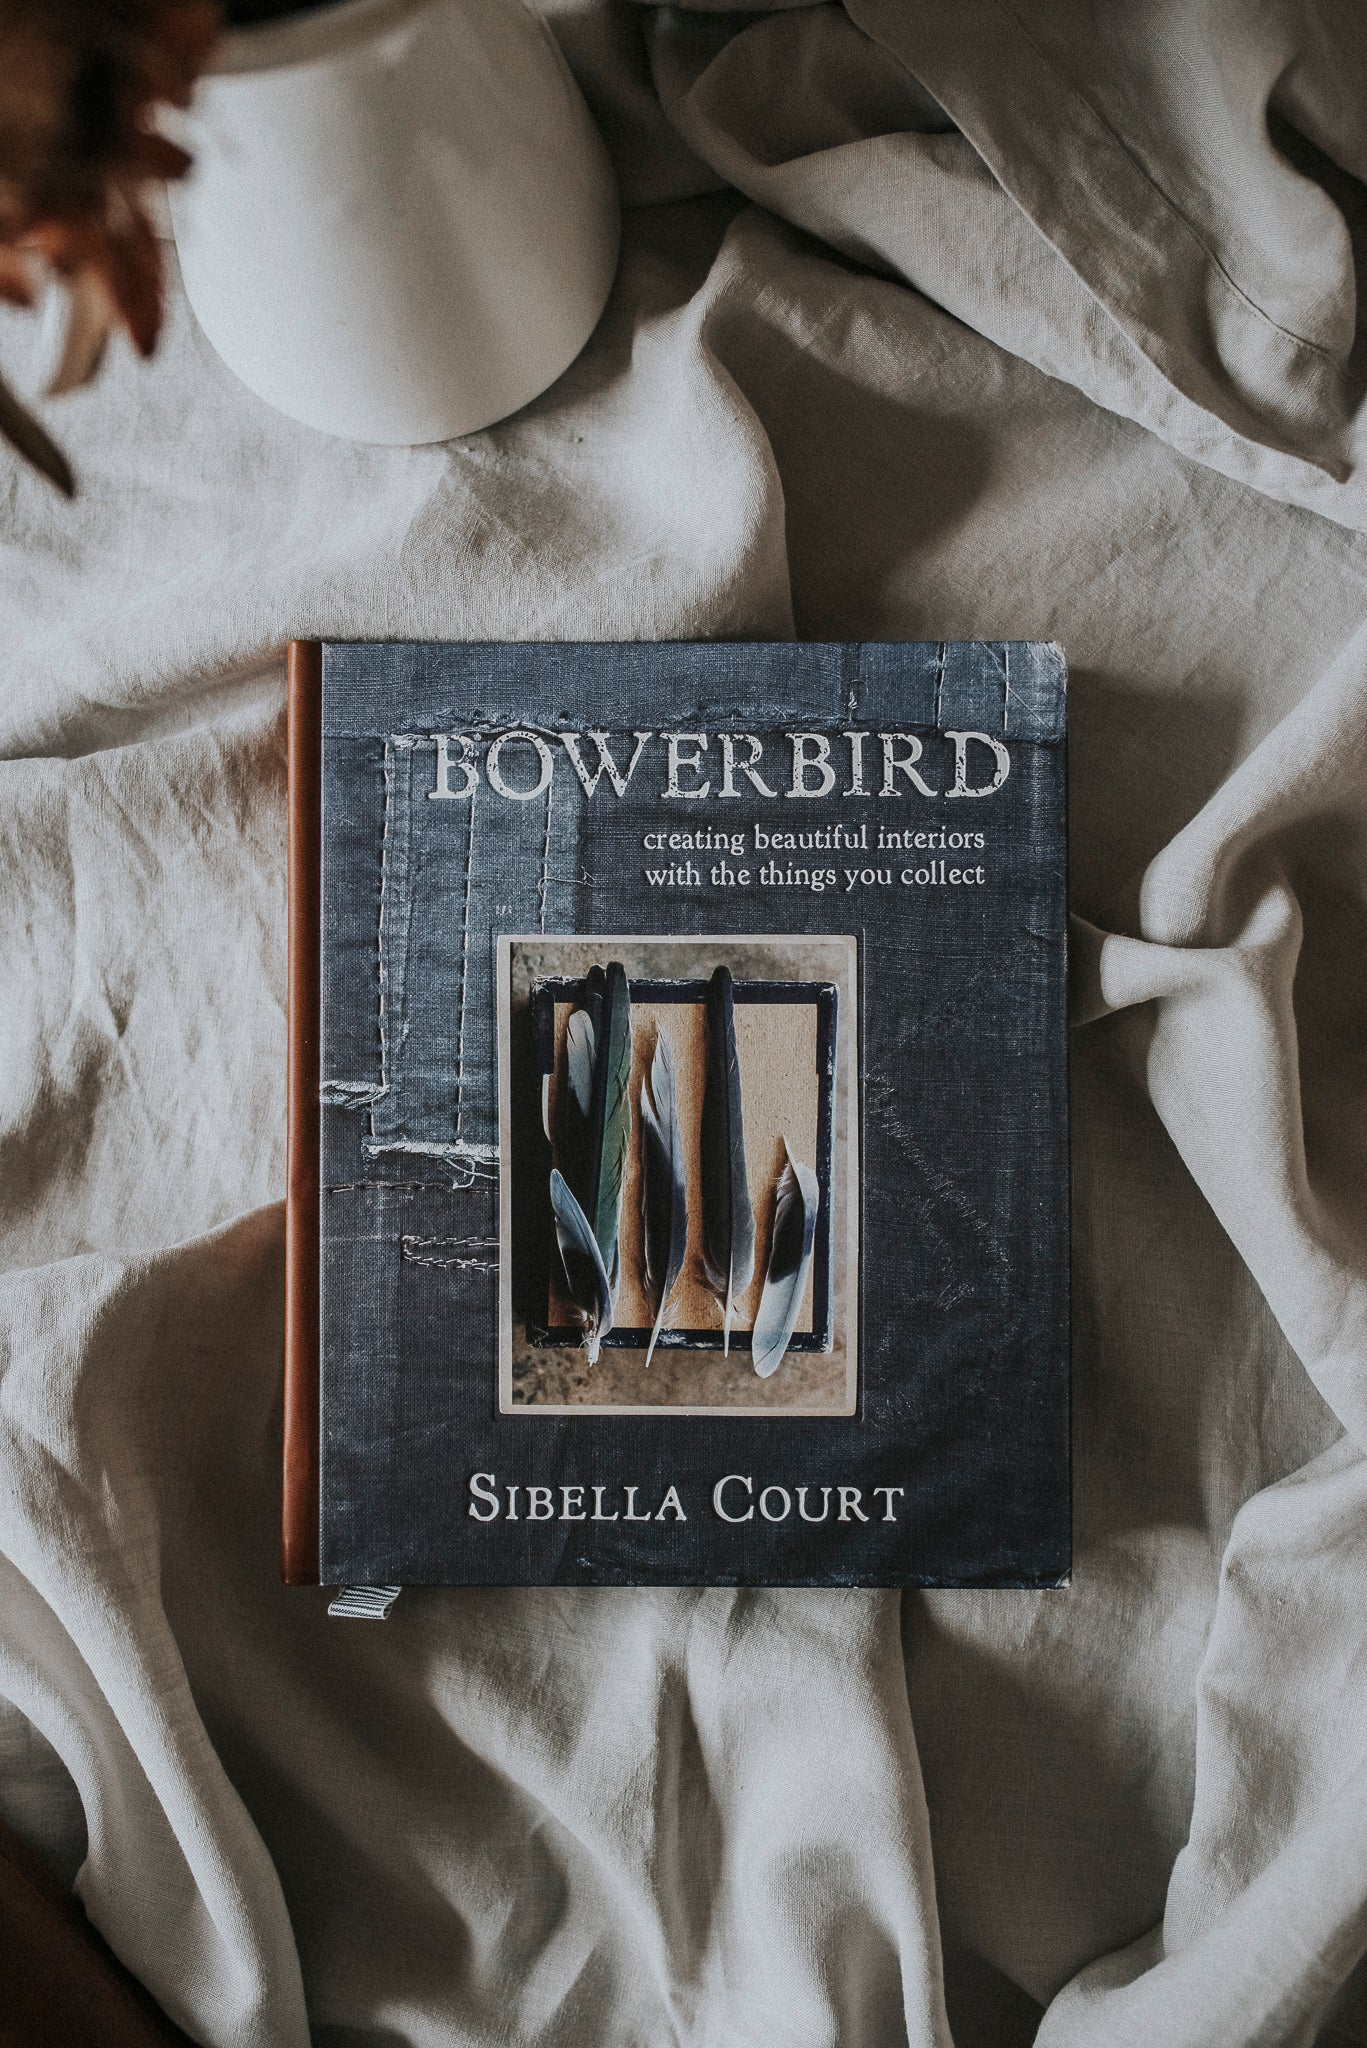 Bowerbird by Sibella Court